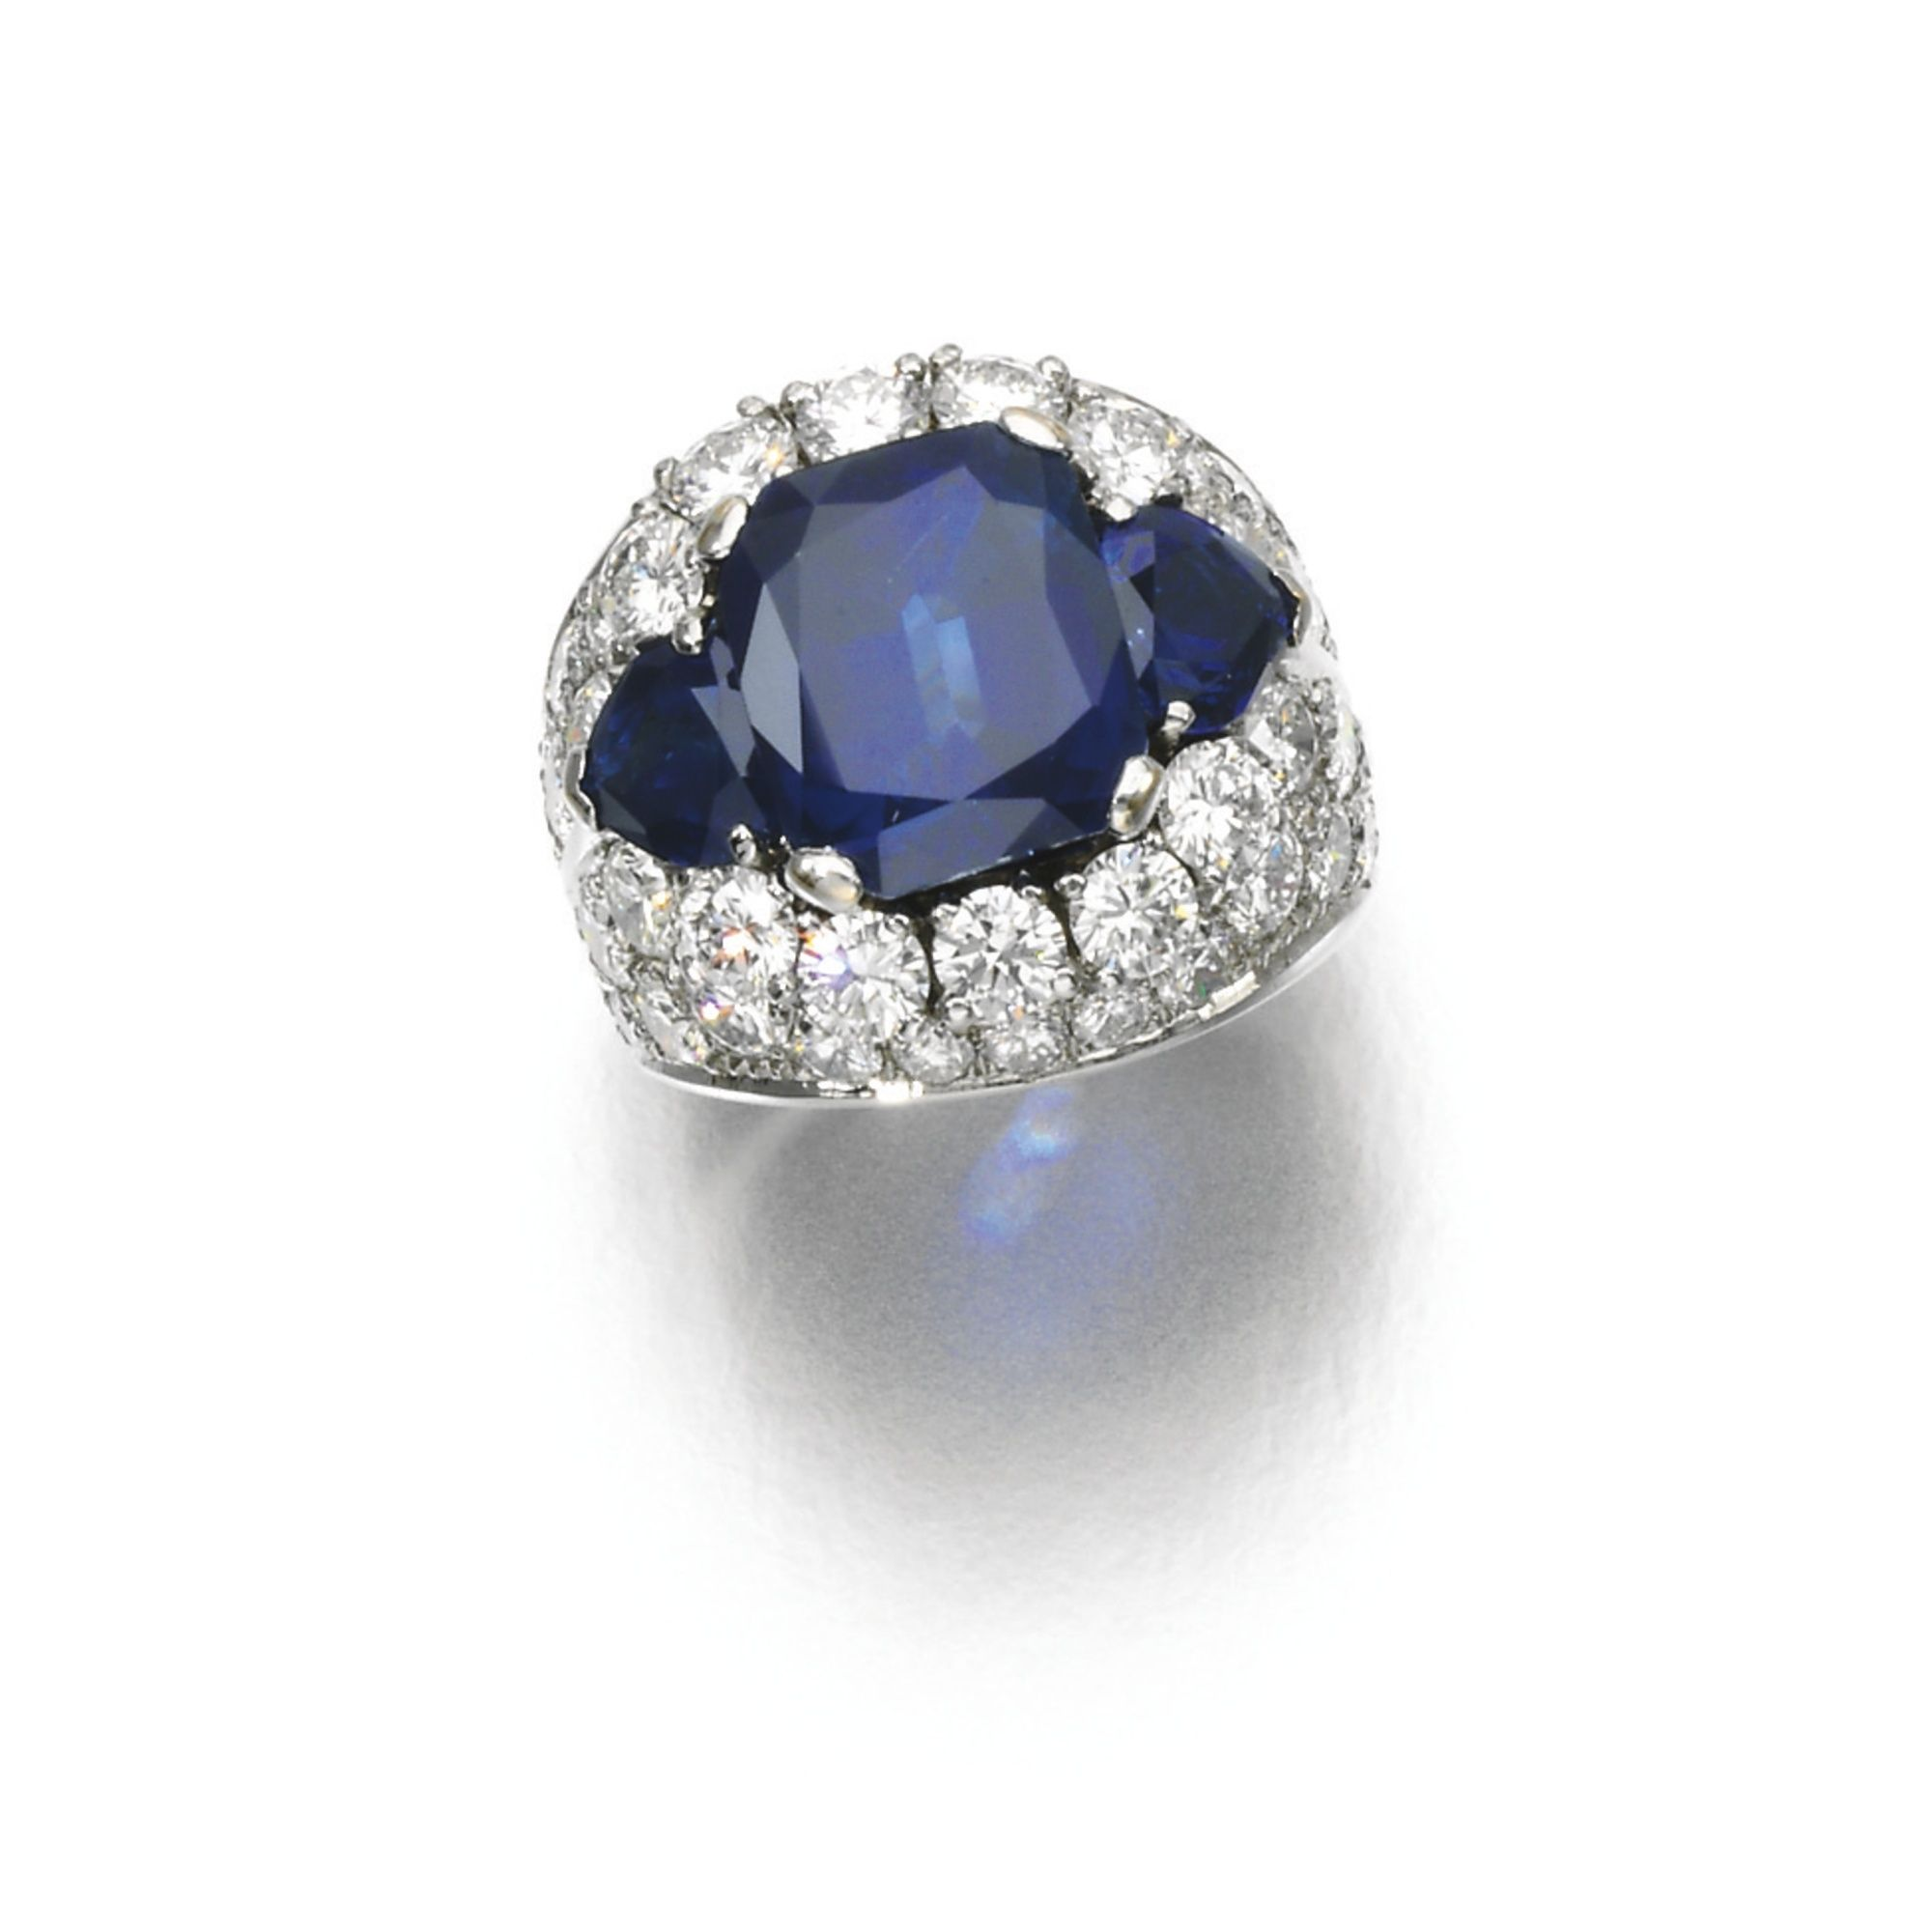 sapphire ring gold sohojewelers deco art vintage antique the shield white products cocktail estate alexandria diamond